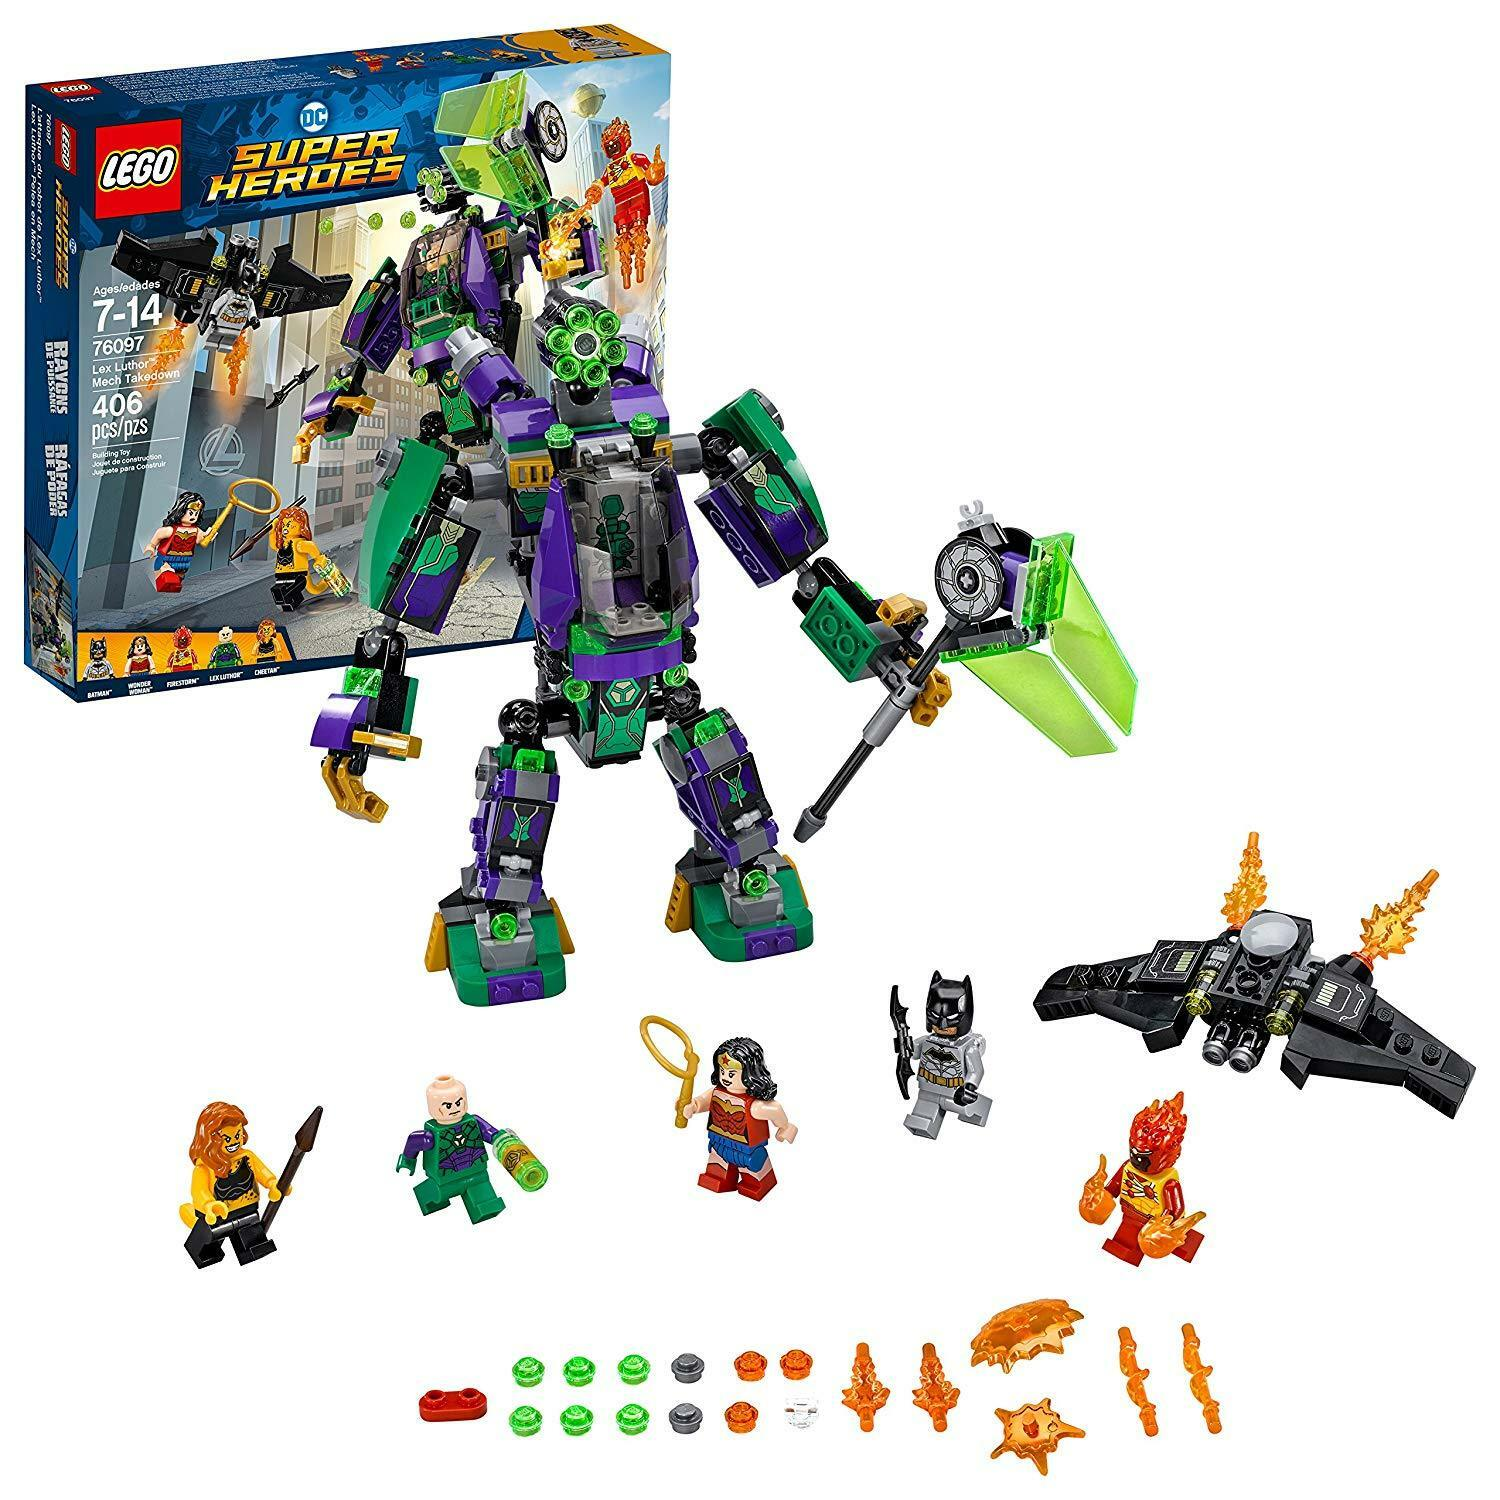 prezzi all'ingrosso LEGO DC Super Heroes Heroes Heroes Lex Luthor Mech Takedown 76097 costruzione Kit (406 Piece)  shopping online di moda